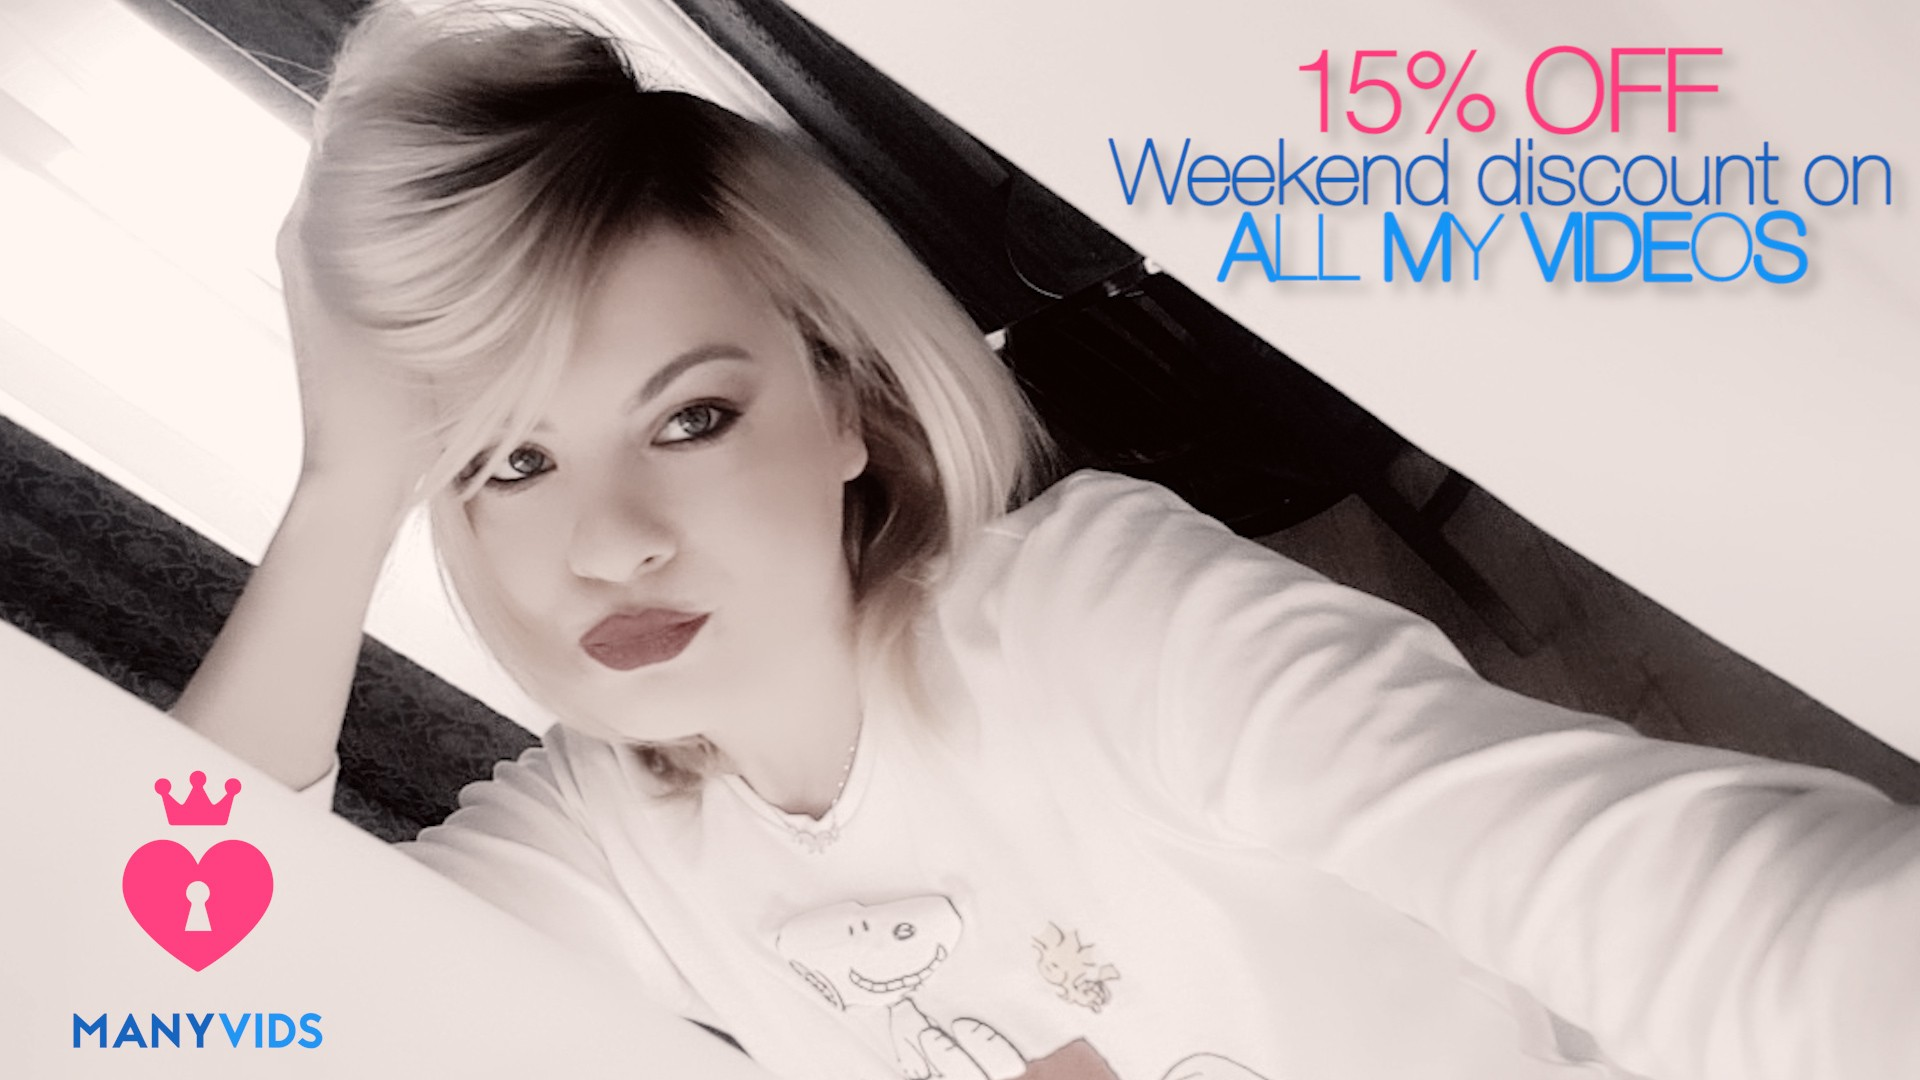 15% OFF WEEKEND DISCOUNT ON ALL MY VIDEOS!!!...